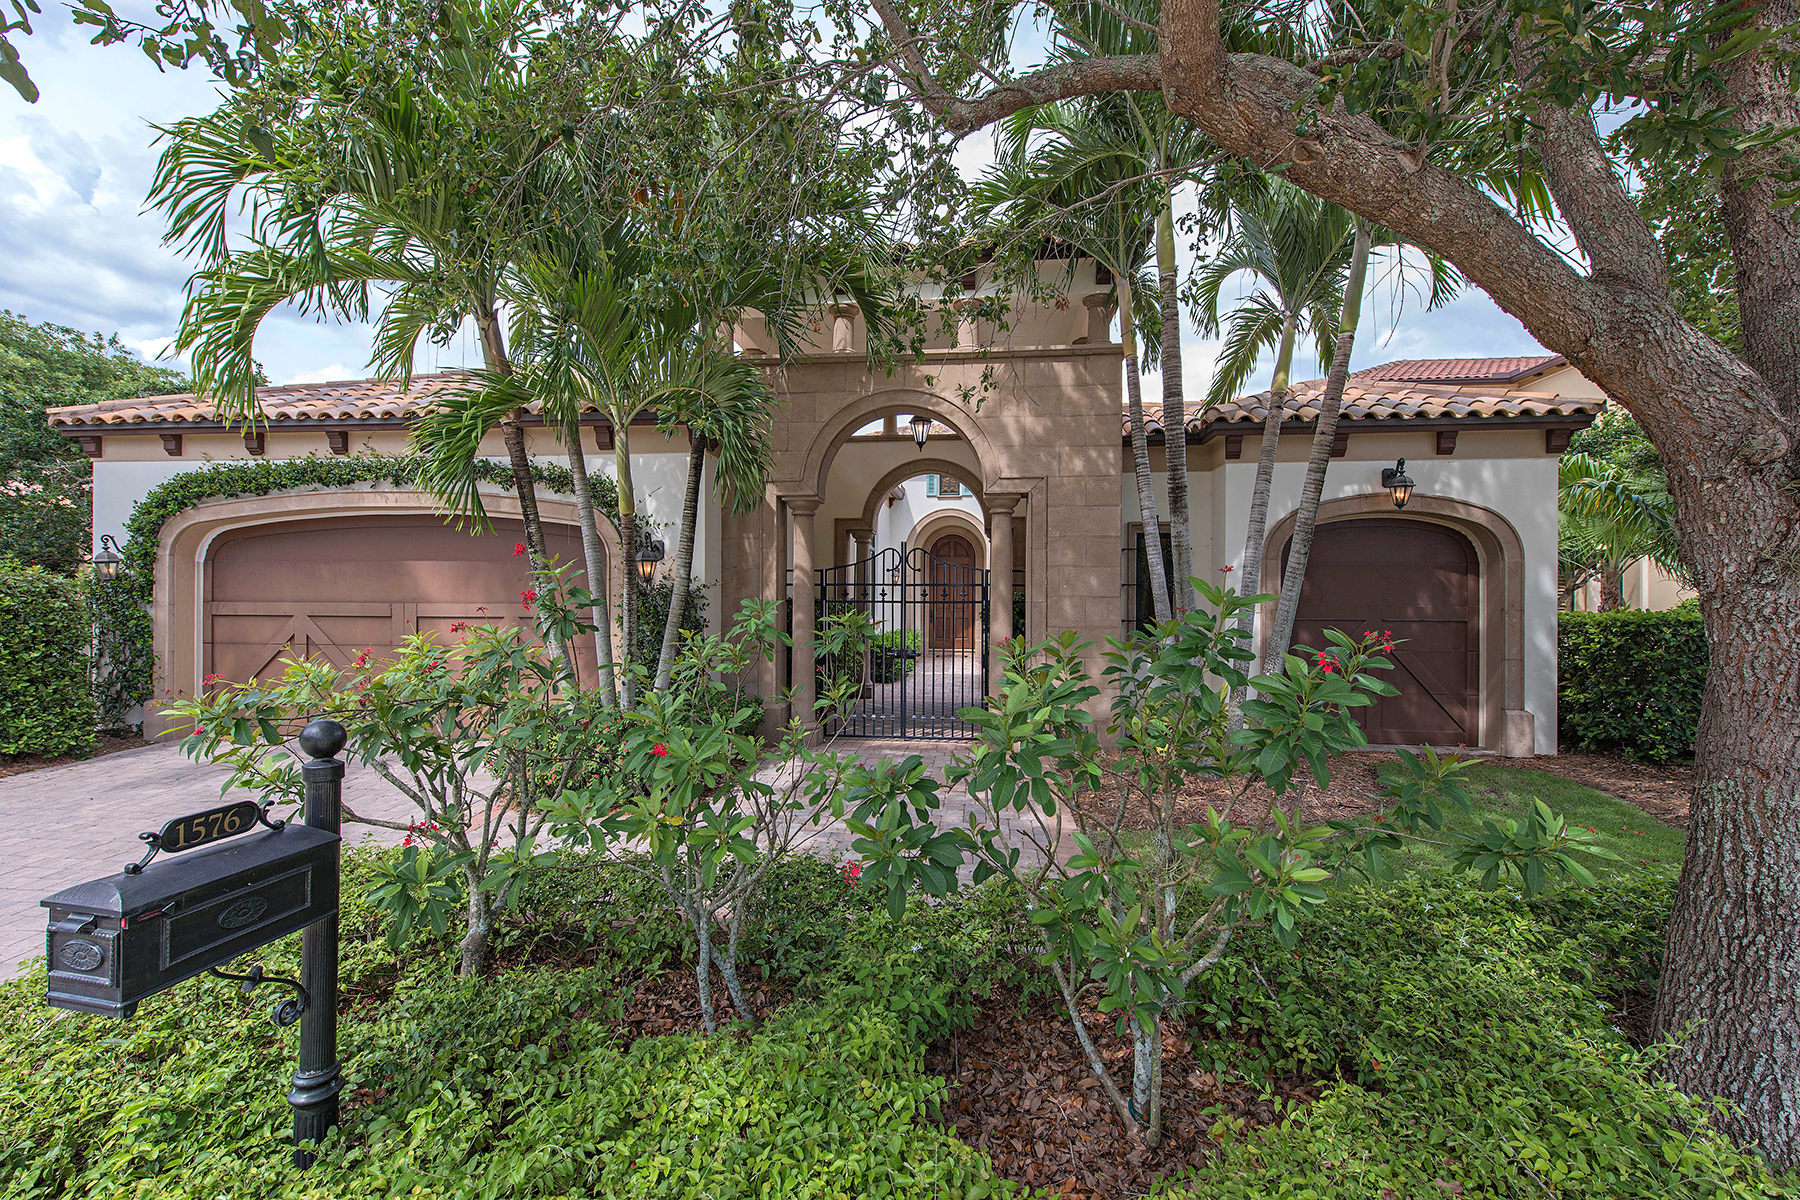 Single Family Home for Sale at 1576 Marsh Wren Ln , Naples, FL 34105 1576 Marsh Wren Ln Naples, Florida, 34105 United States